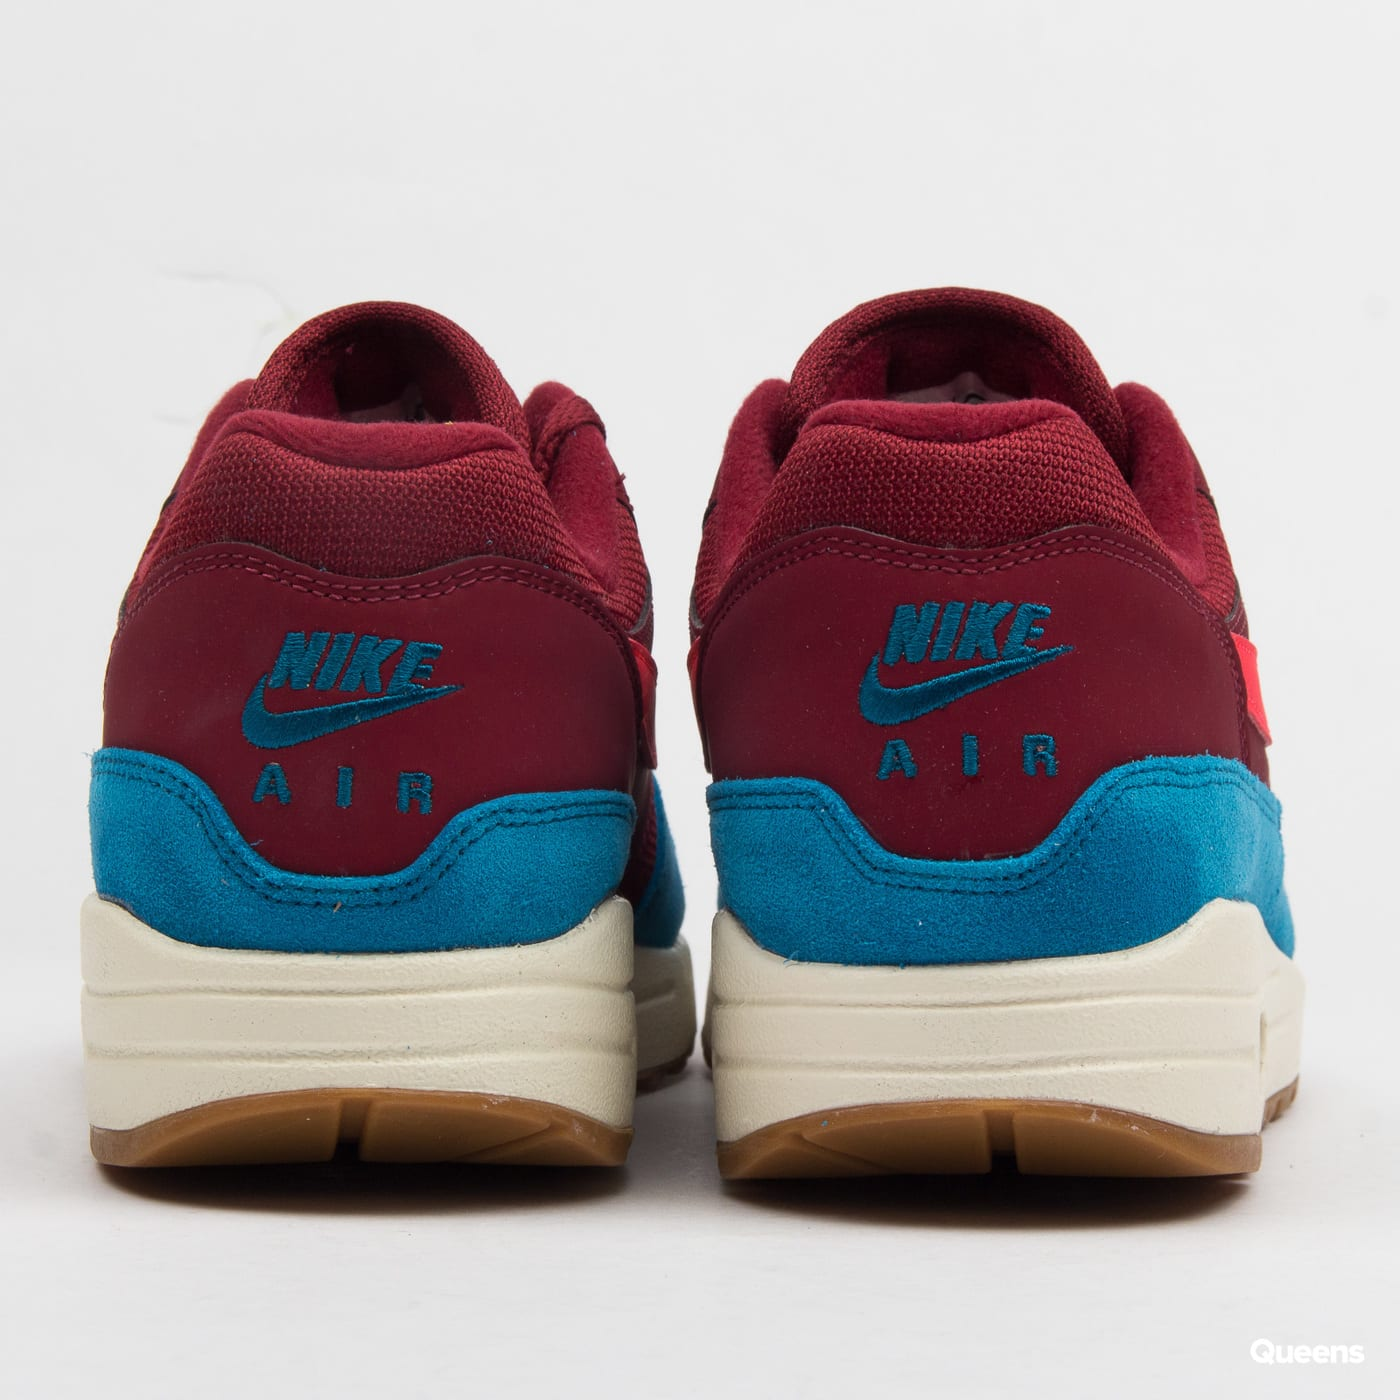 Nike Air Max 1 team red / red orbit - green abyss